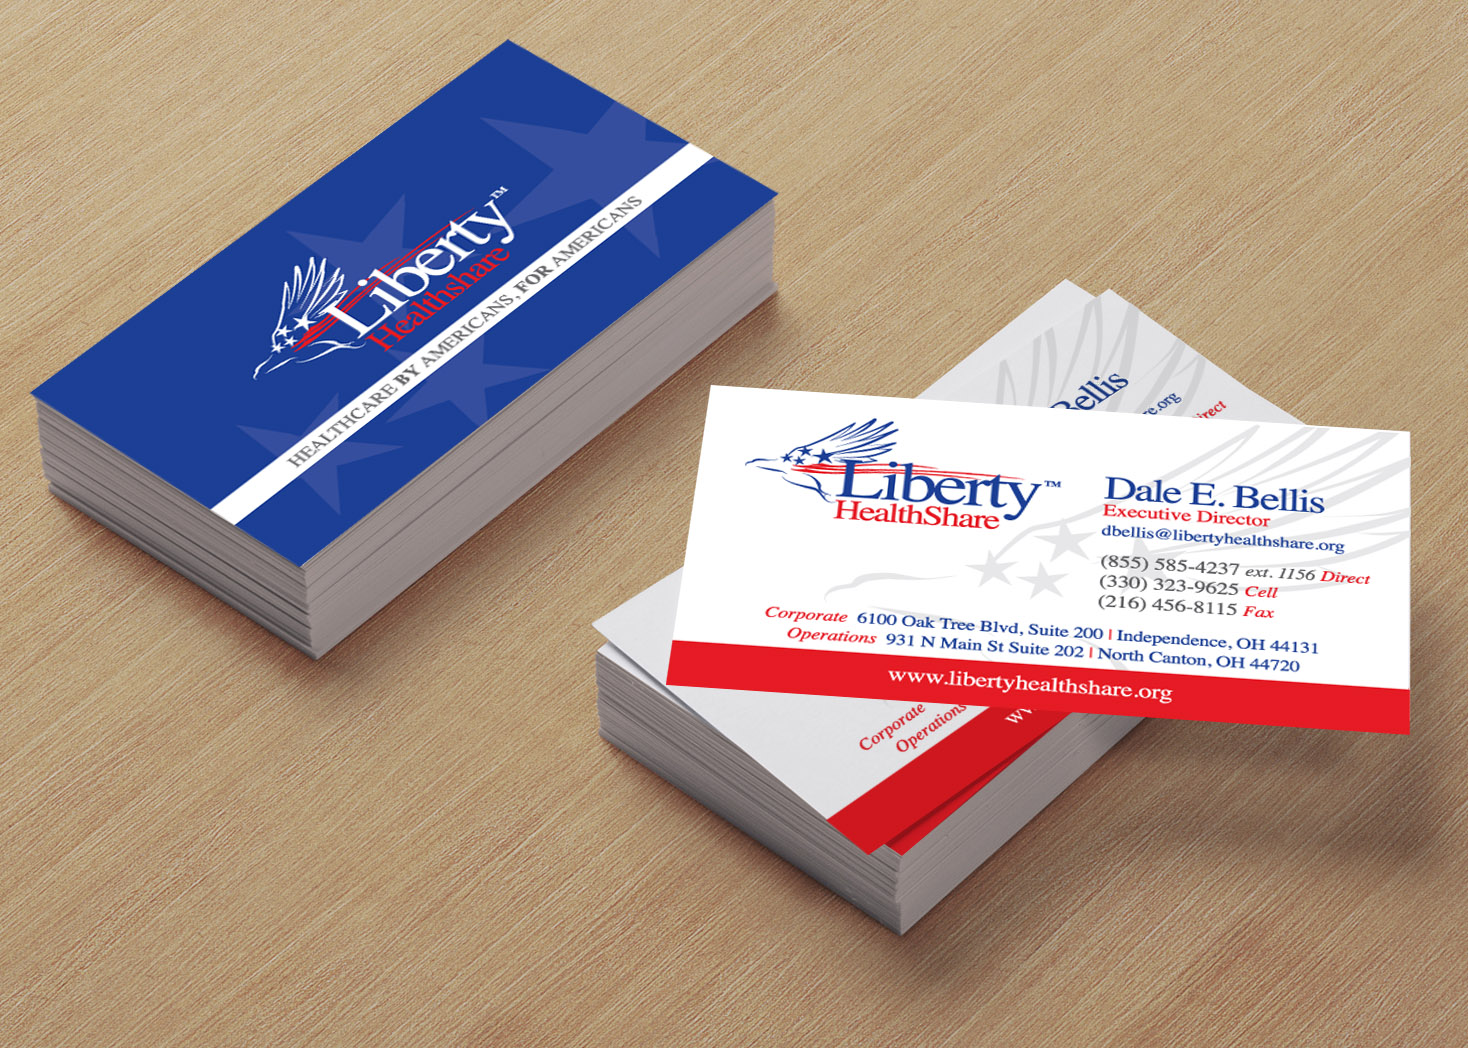 Liberty HealthShare - Business Card Design - Les Lehman Design